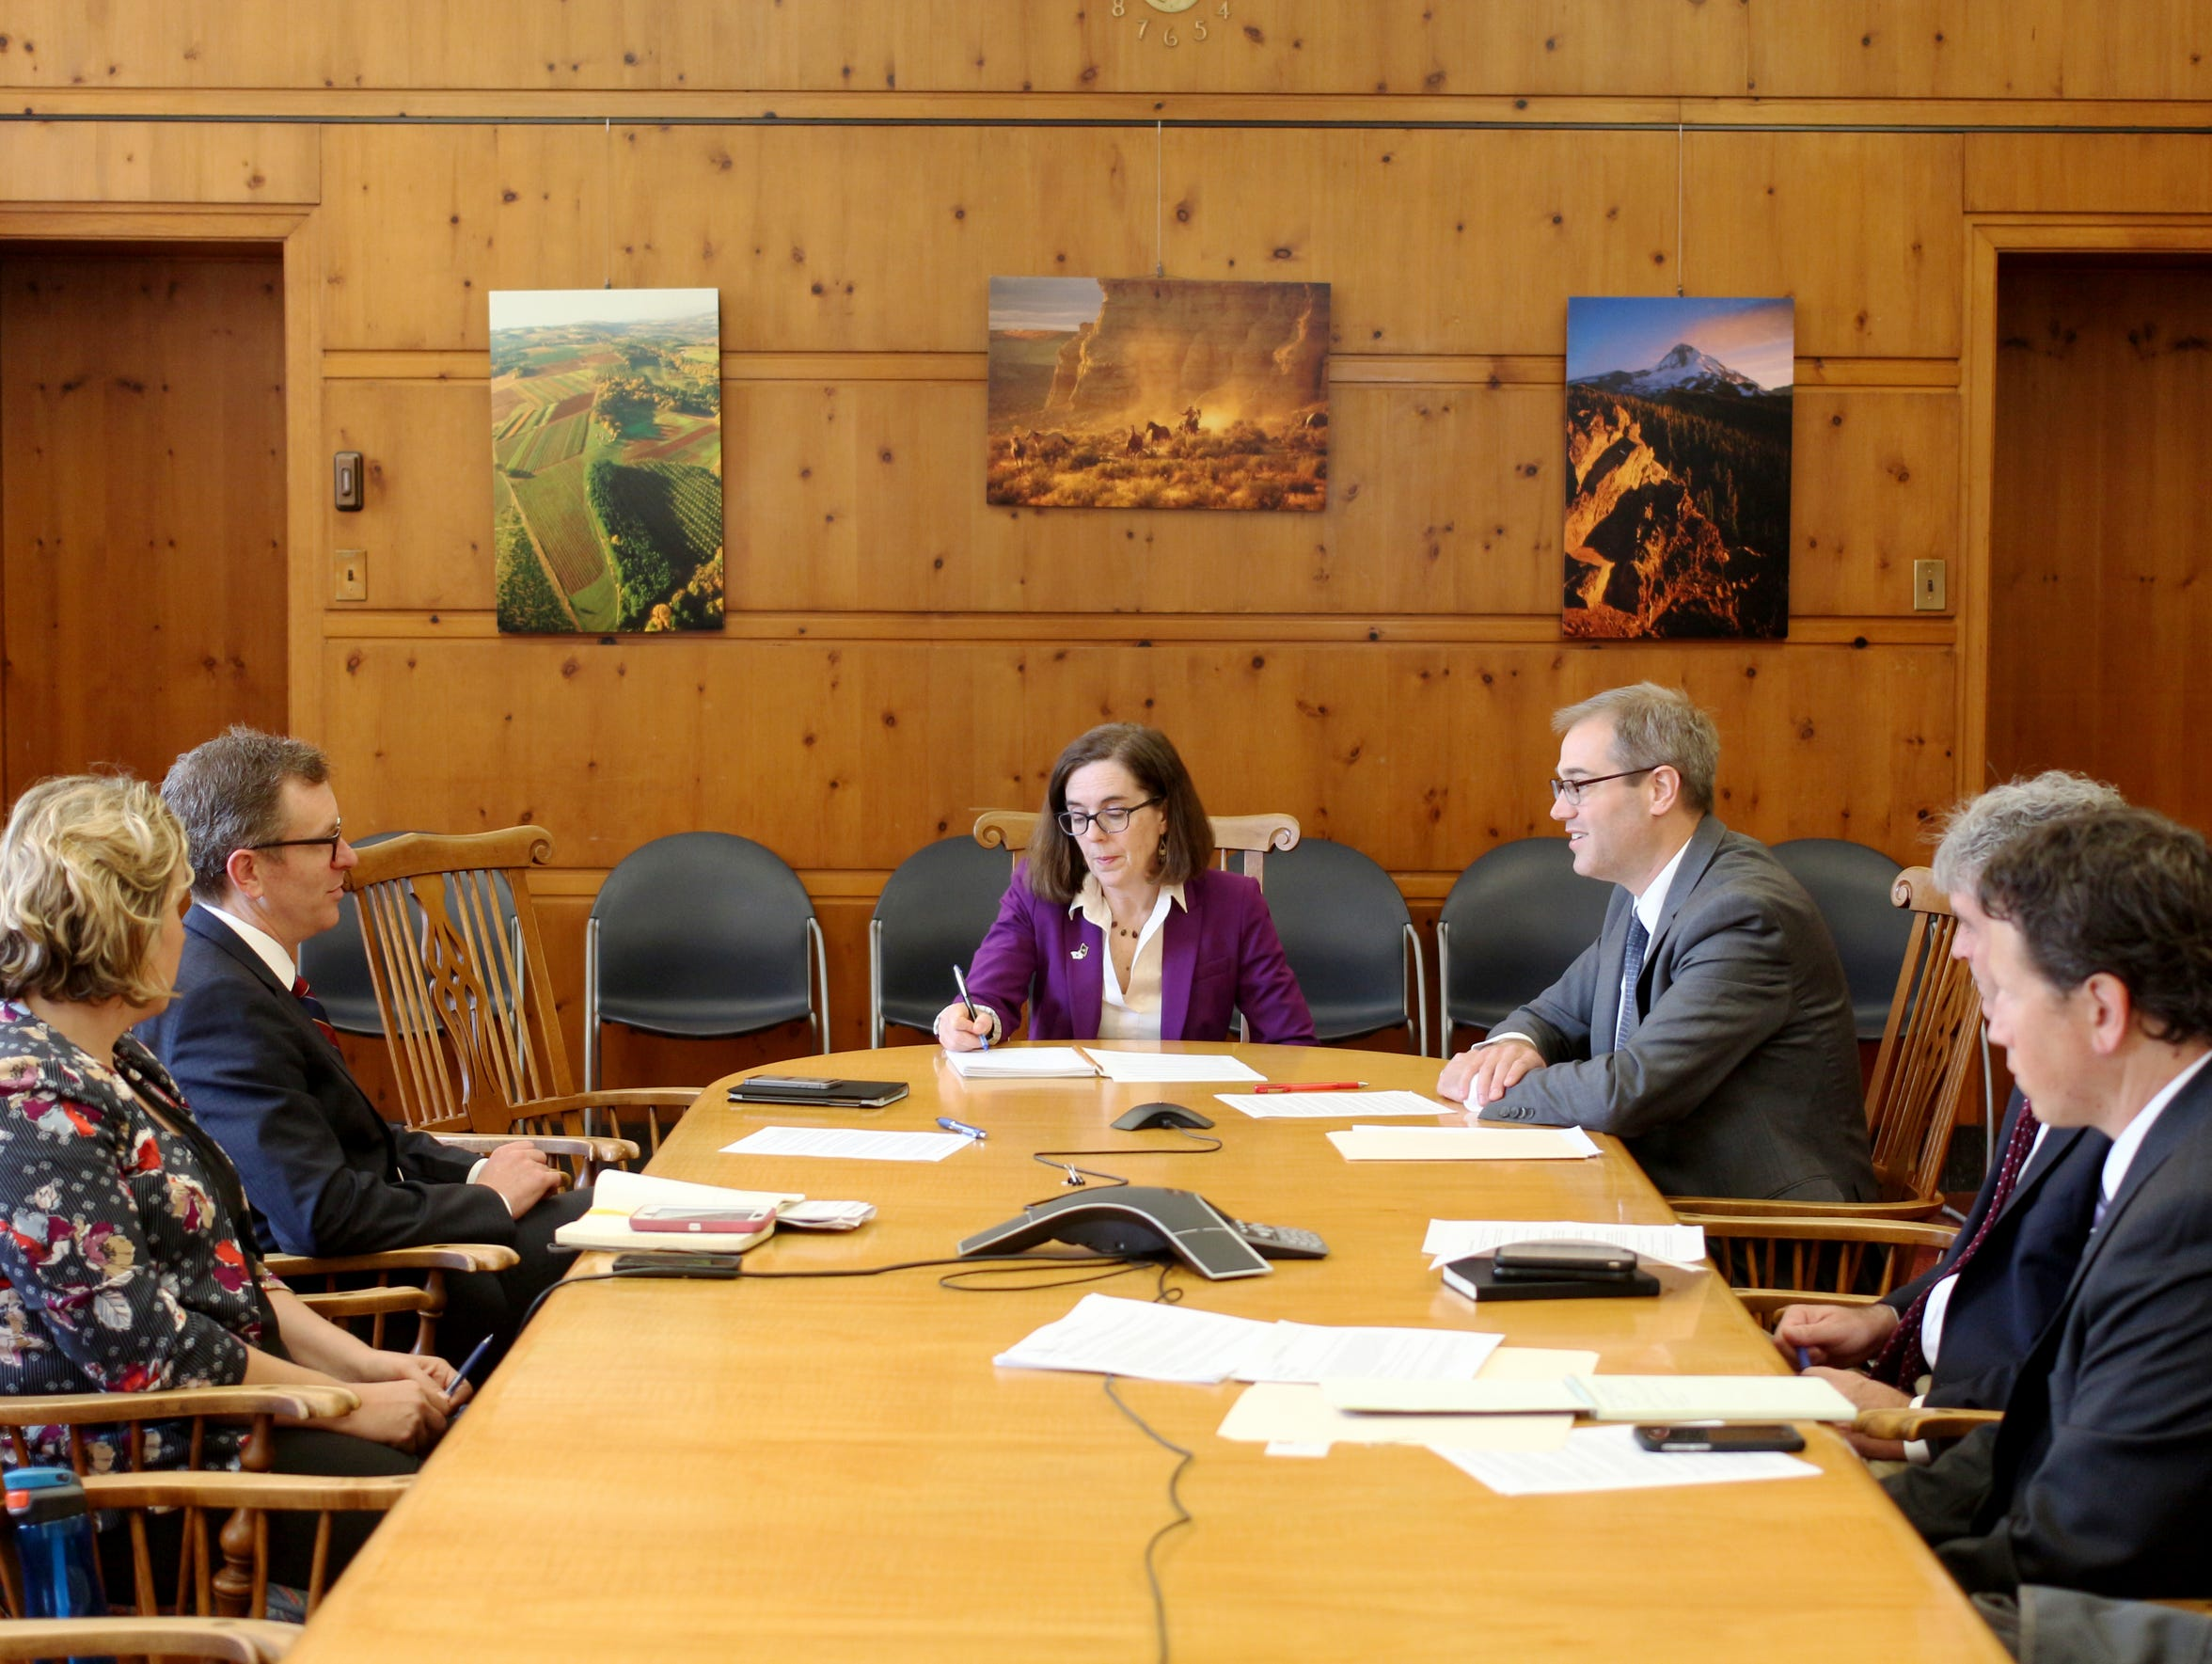 Oregon Gov. Kate Brown, center, being briefed by economic